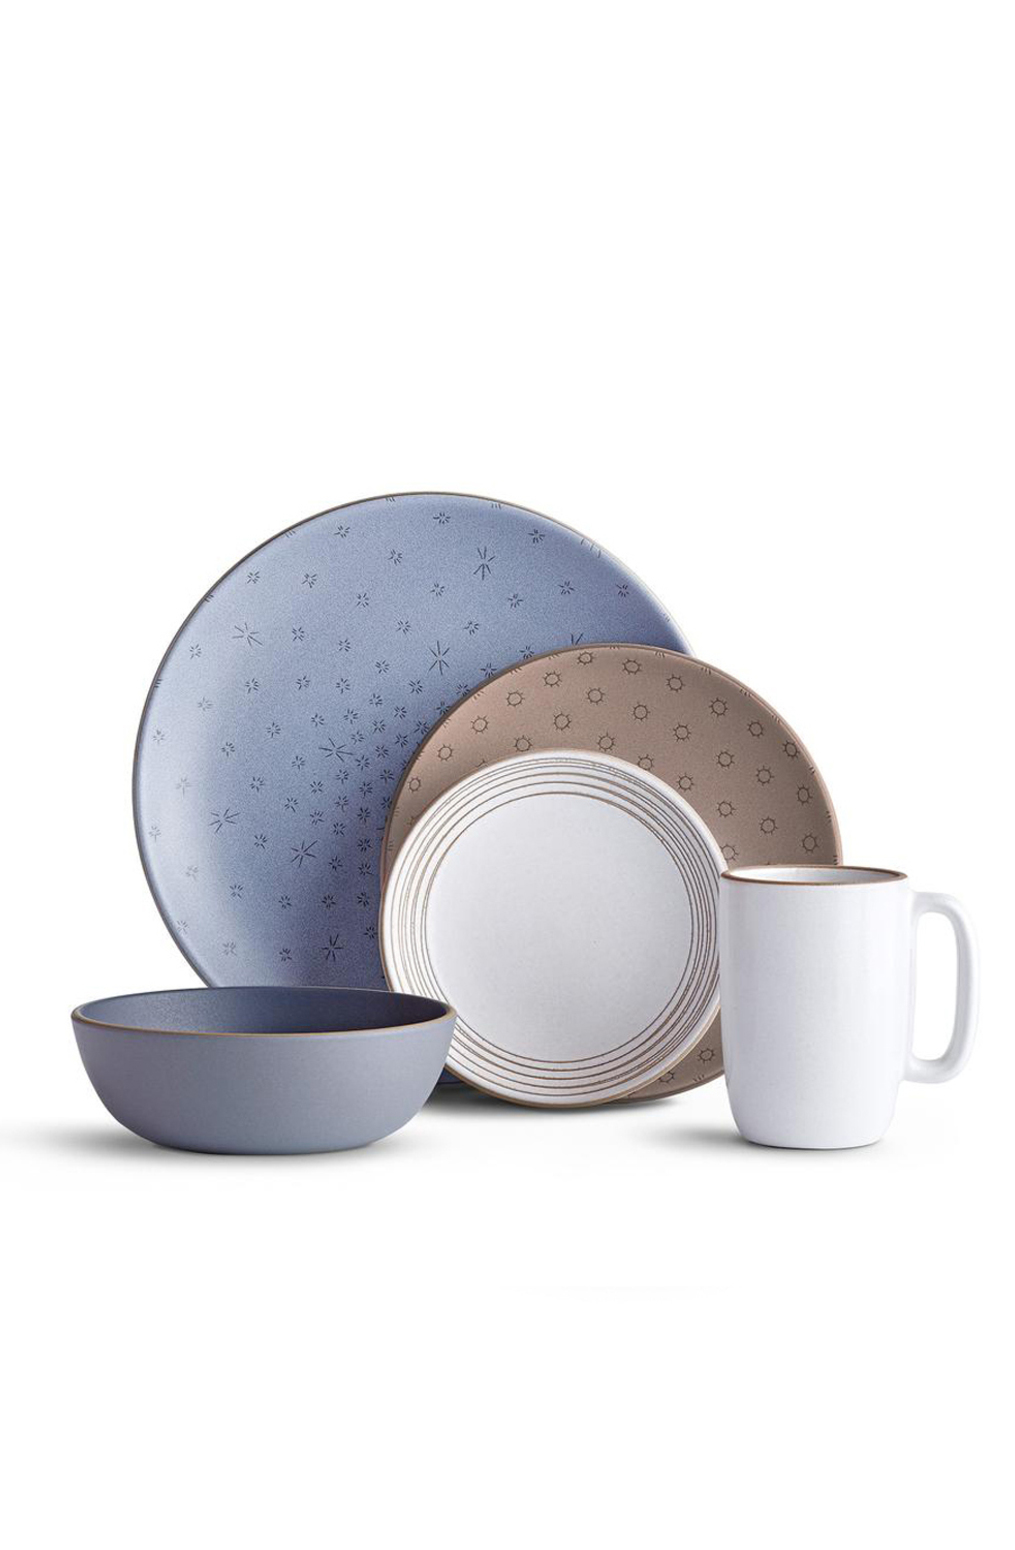 Sweetwater dinnerware set   heath ac 107   heath ceramics